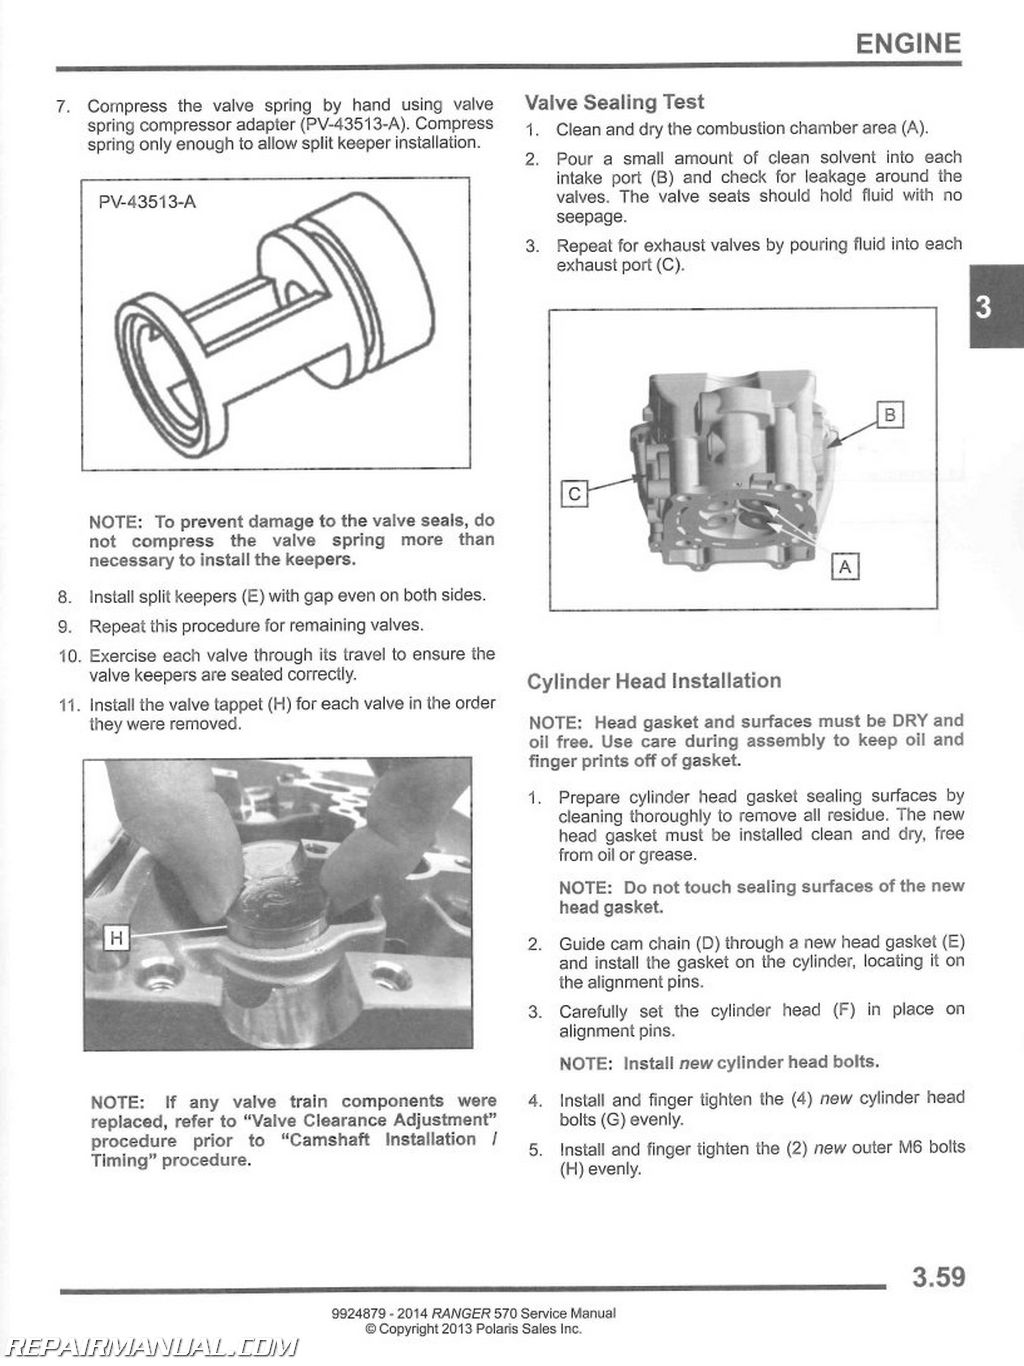 Fuelrailvalve together with Mji Mje Mq Dfb Dab also Mjewmjy Oq additionally Polaris Ranger Atv Service Manual Page in addition D. on polaris sportsman 500 fuel line diagram